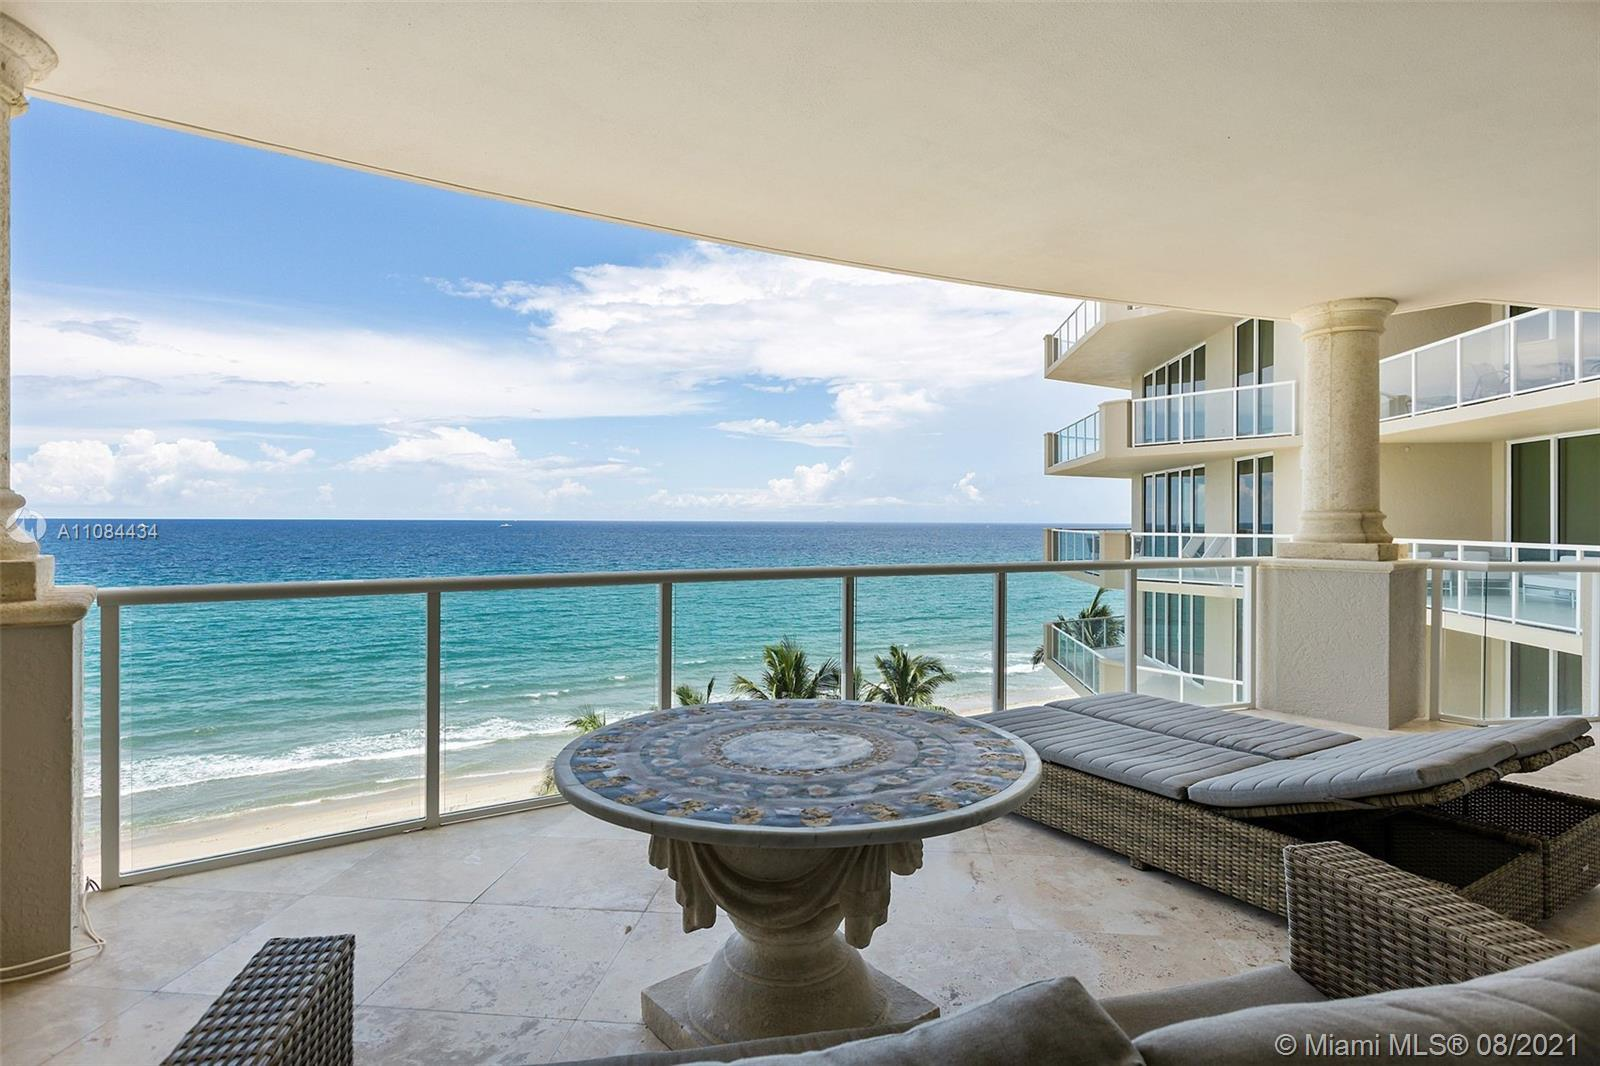 This stunning unit offers pristine ocean views to the east complemented by illuminating Intracoastal